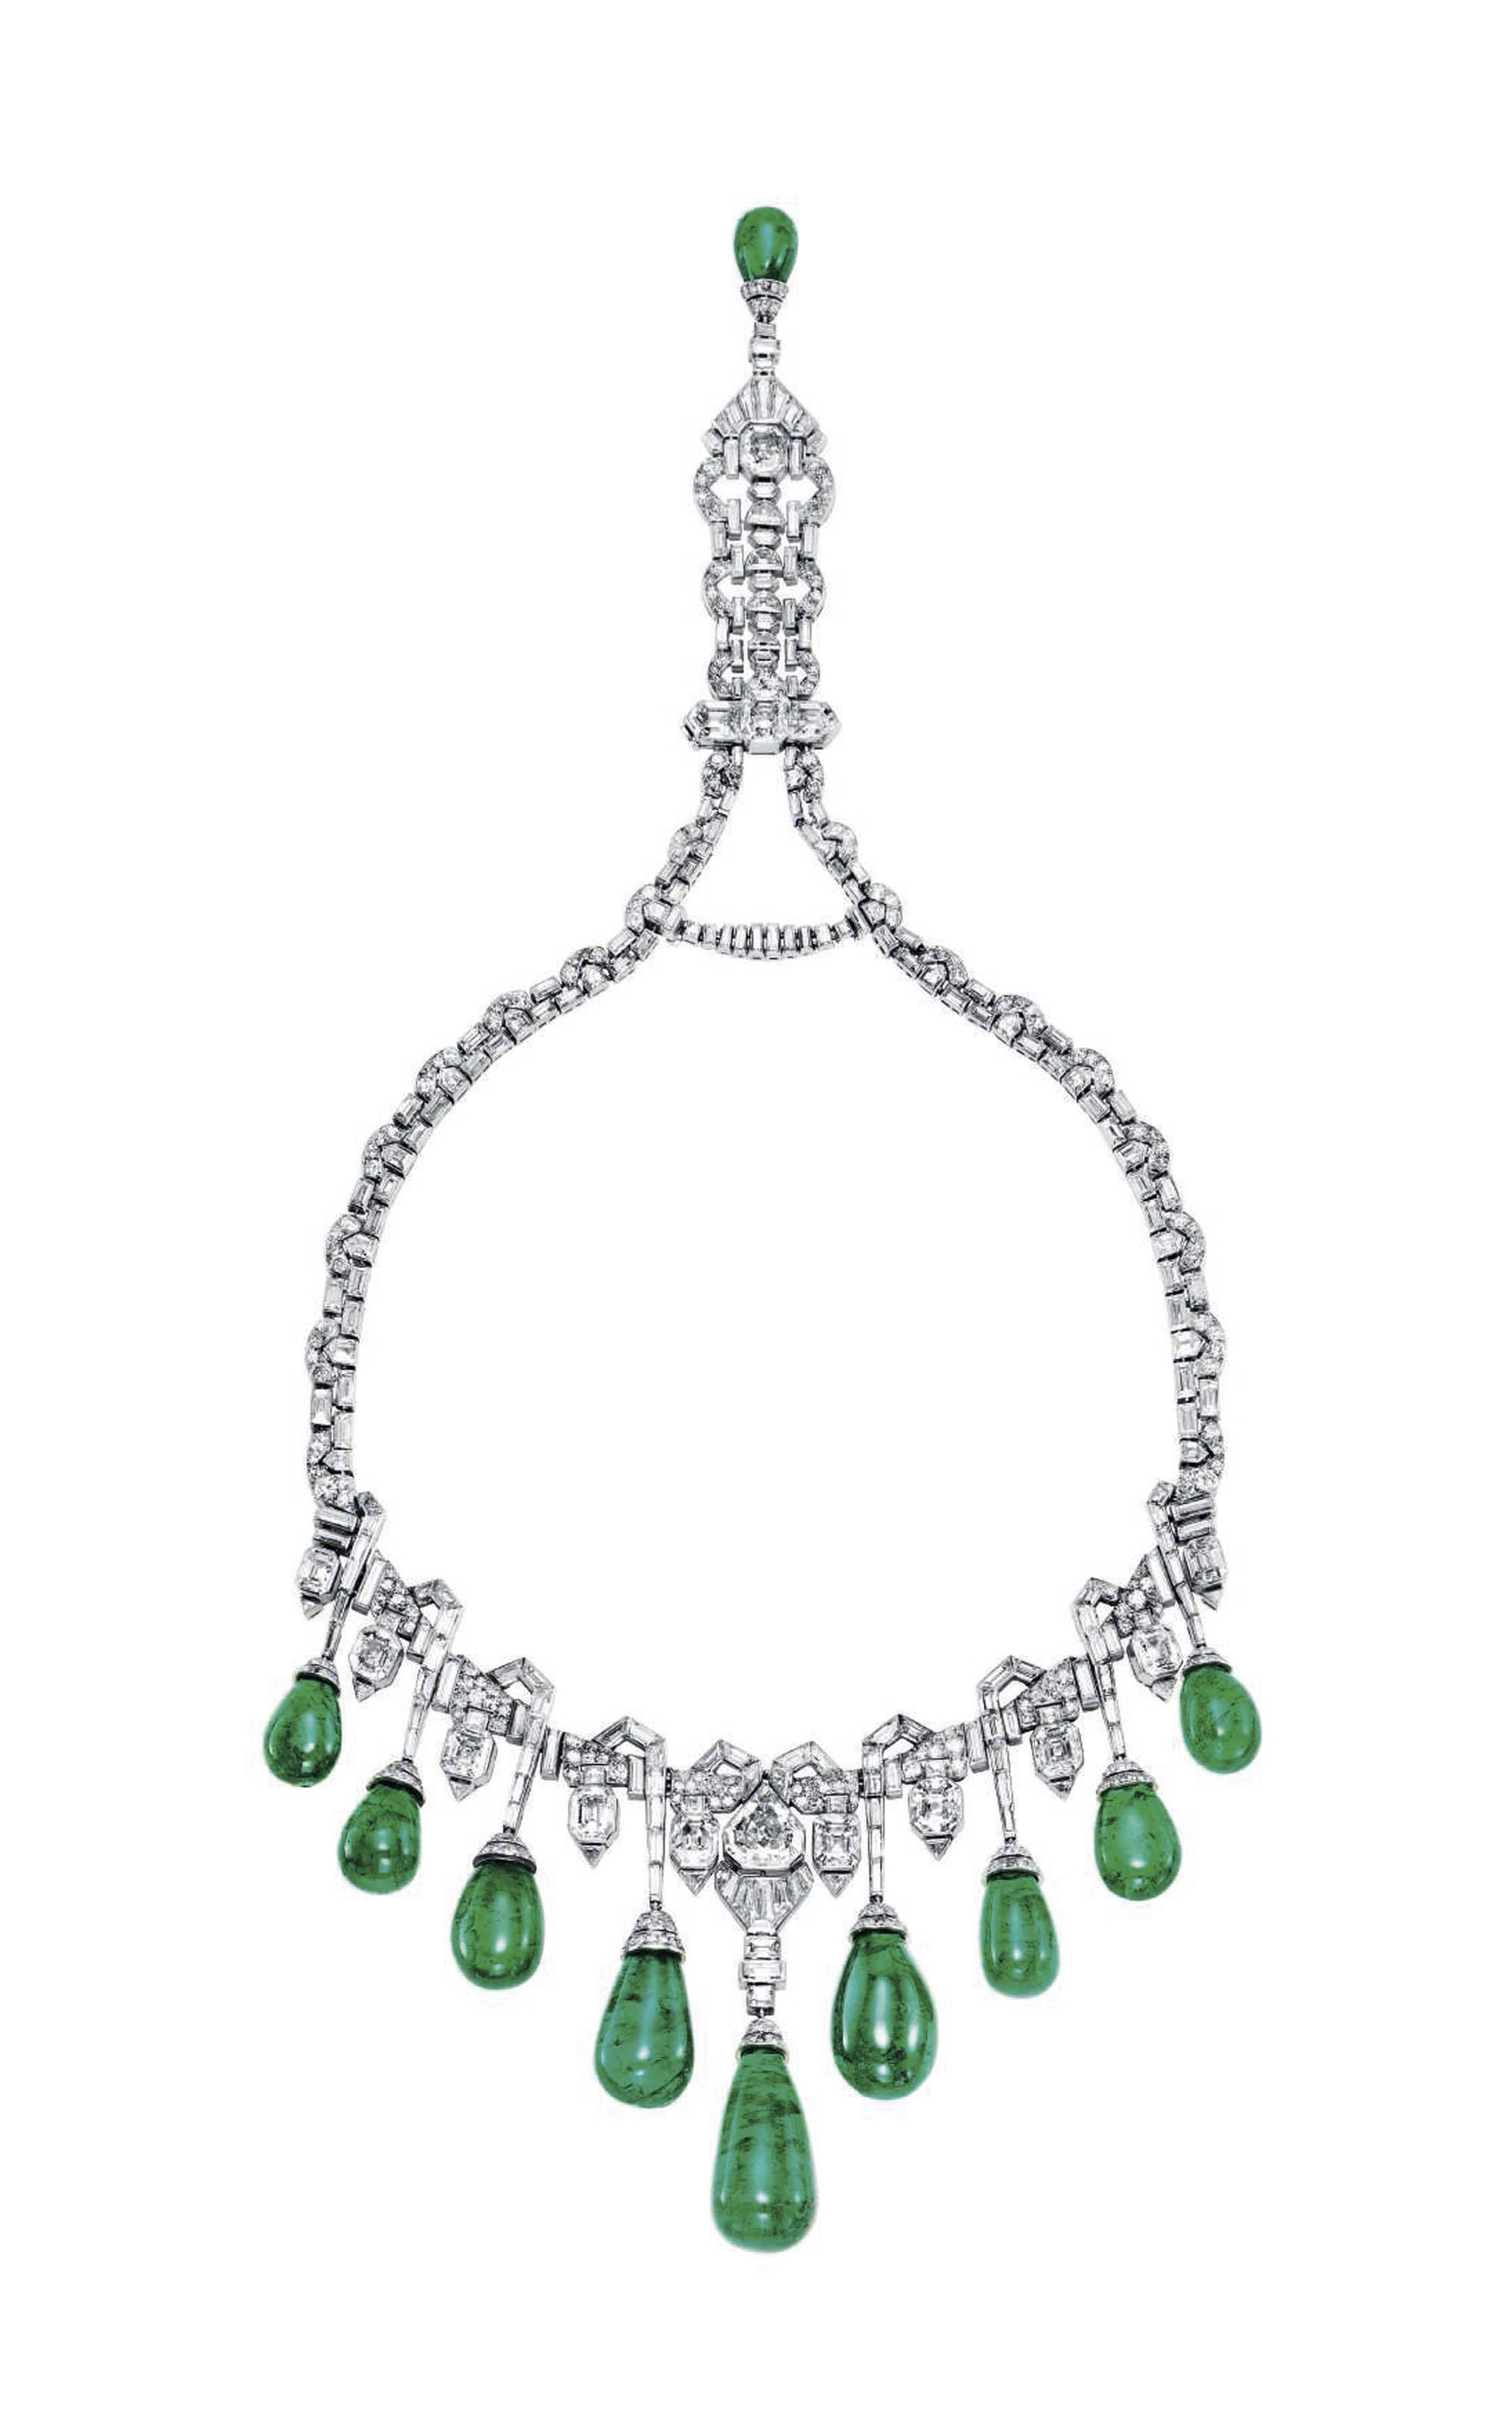 AN ART DECO EMERALD AND DIAMOND NECKLACE, BY VAN CLEEF & ARPELS